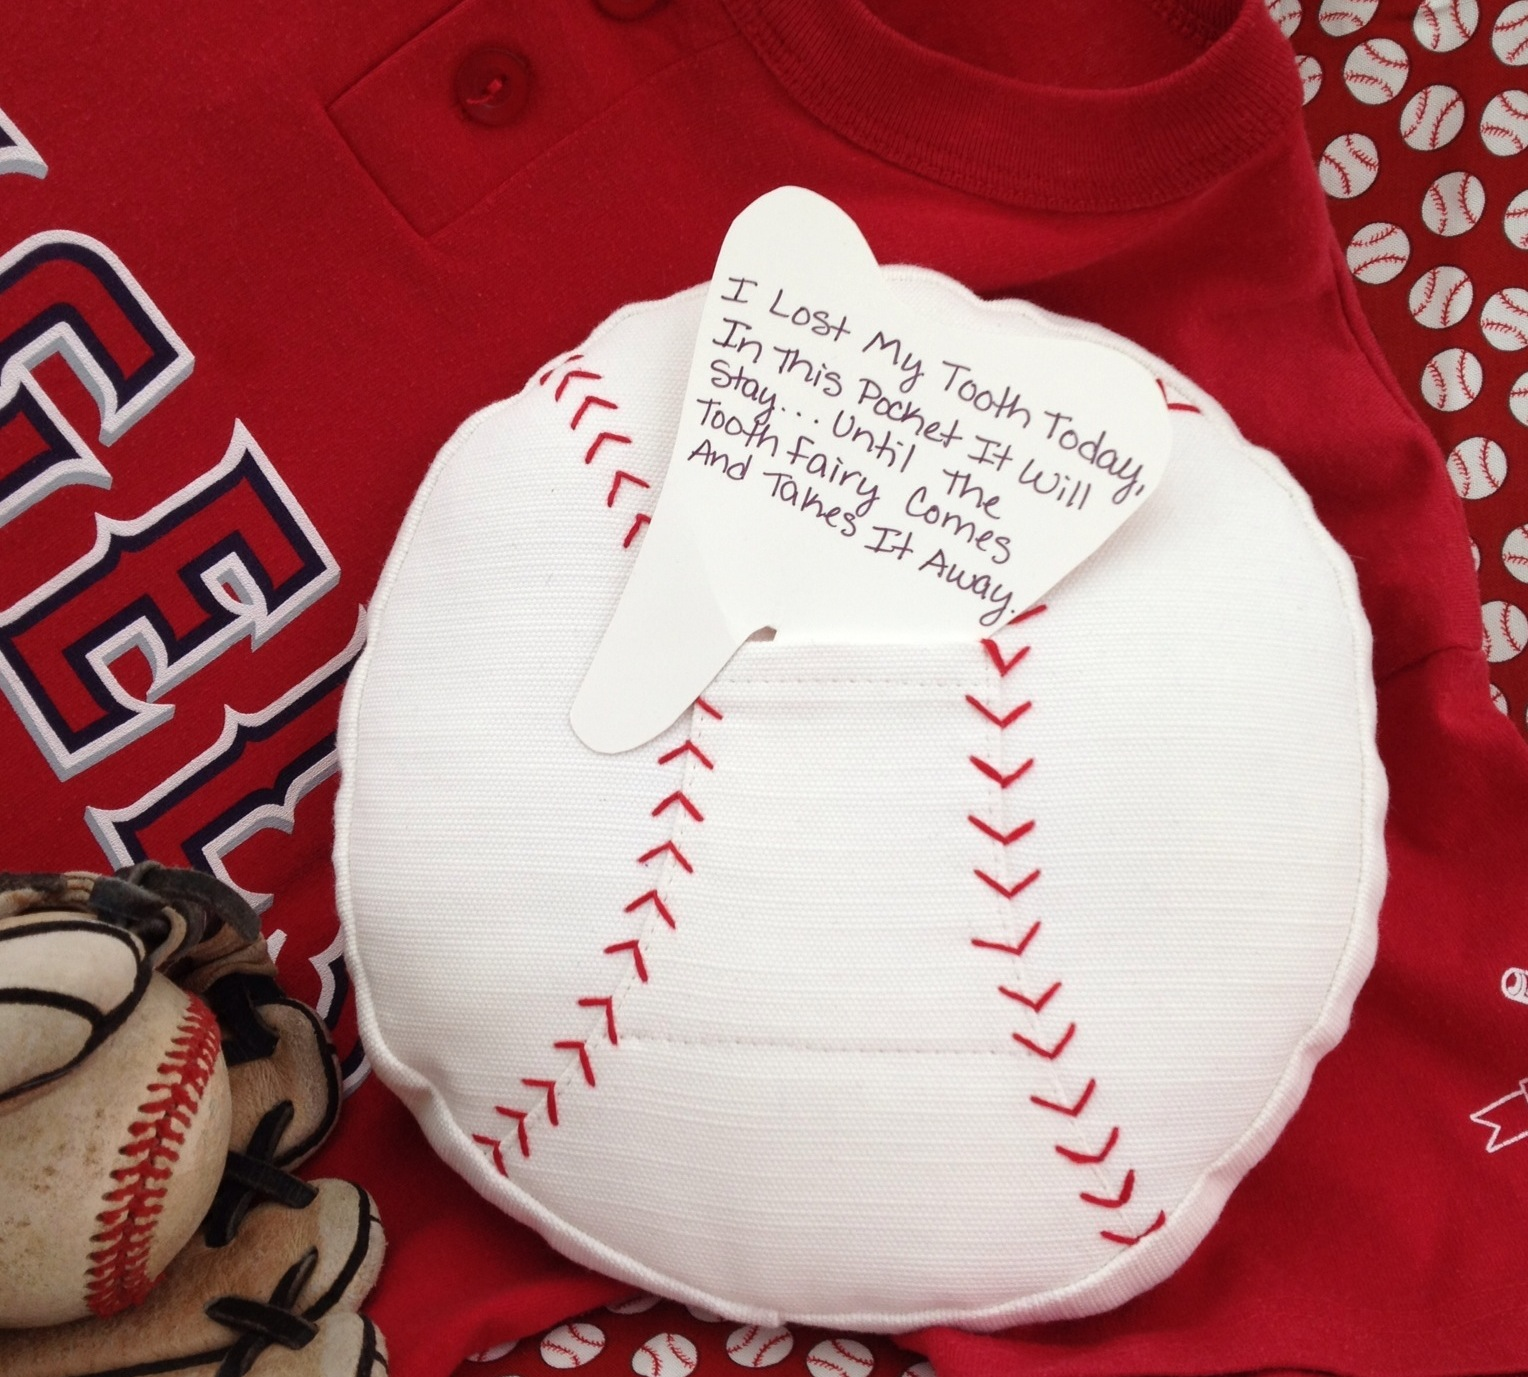 Sew Passionate Baseball Toothfairy Pillow